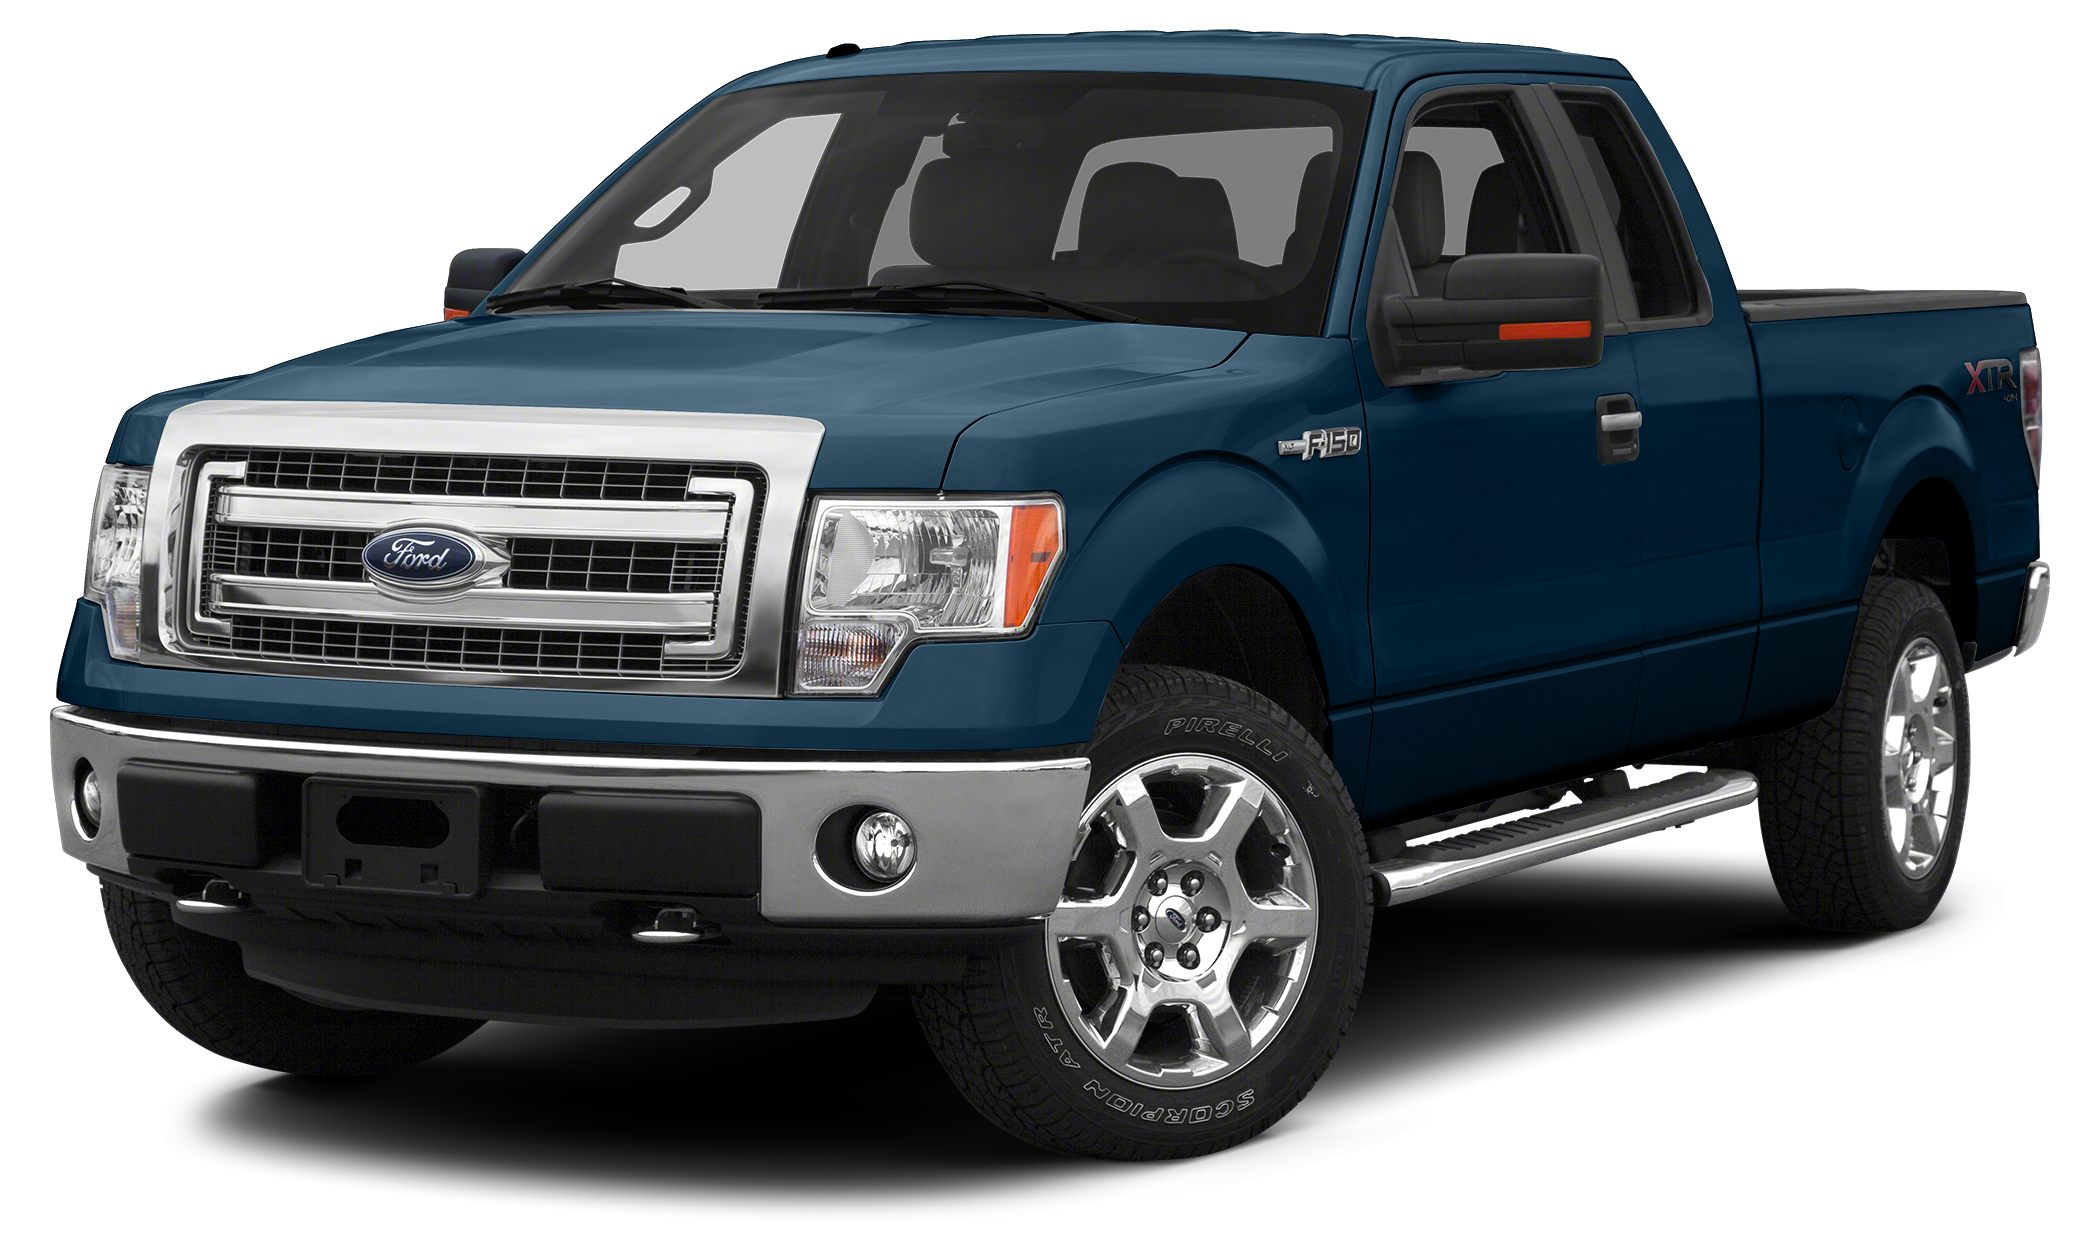 2013 Ford F-150 Lariat CARFAX 1-Owner GREAT MILES 32166 Lariat trim Heated Leather Seats 4x4